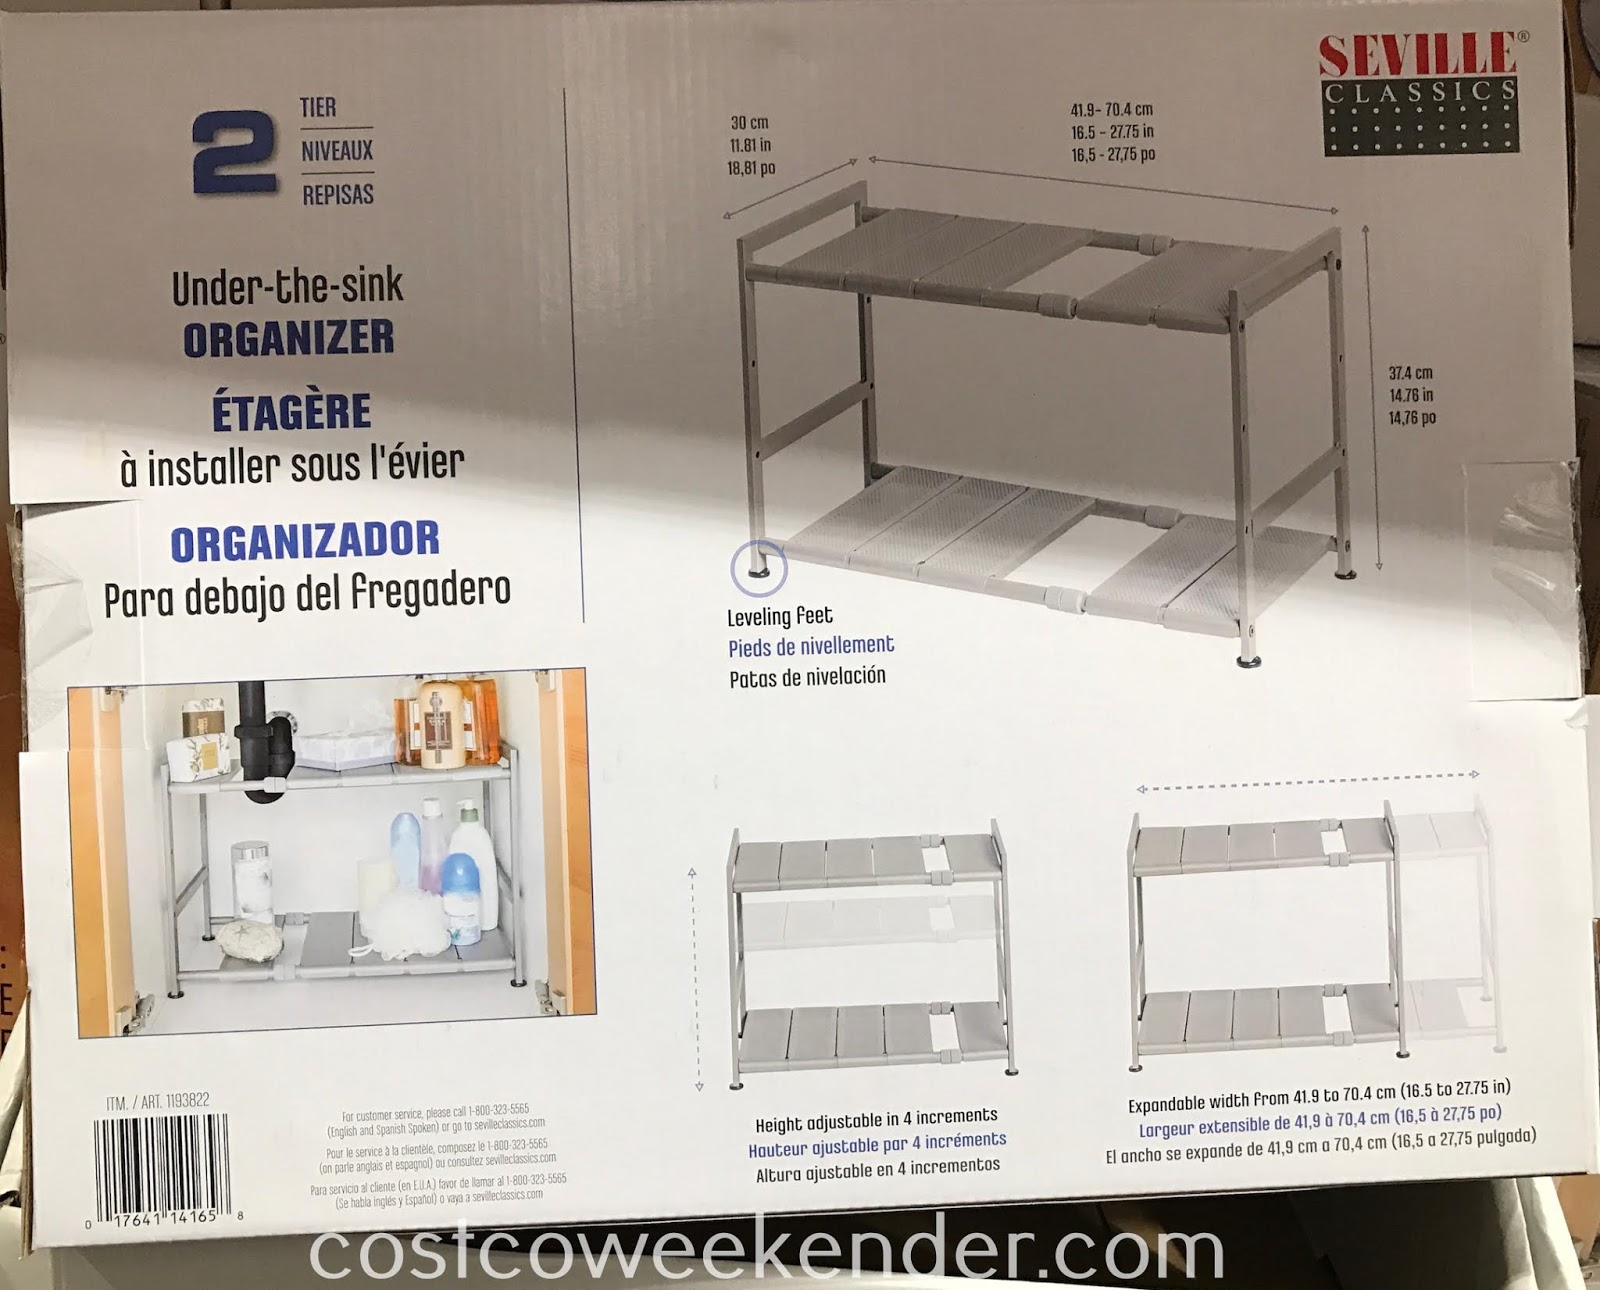 Costco 1193822 - Seville Classics 2-Tier Under-the-Sink Organizer: great for any kitchen or bathroom